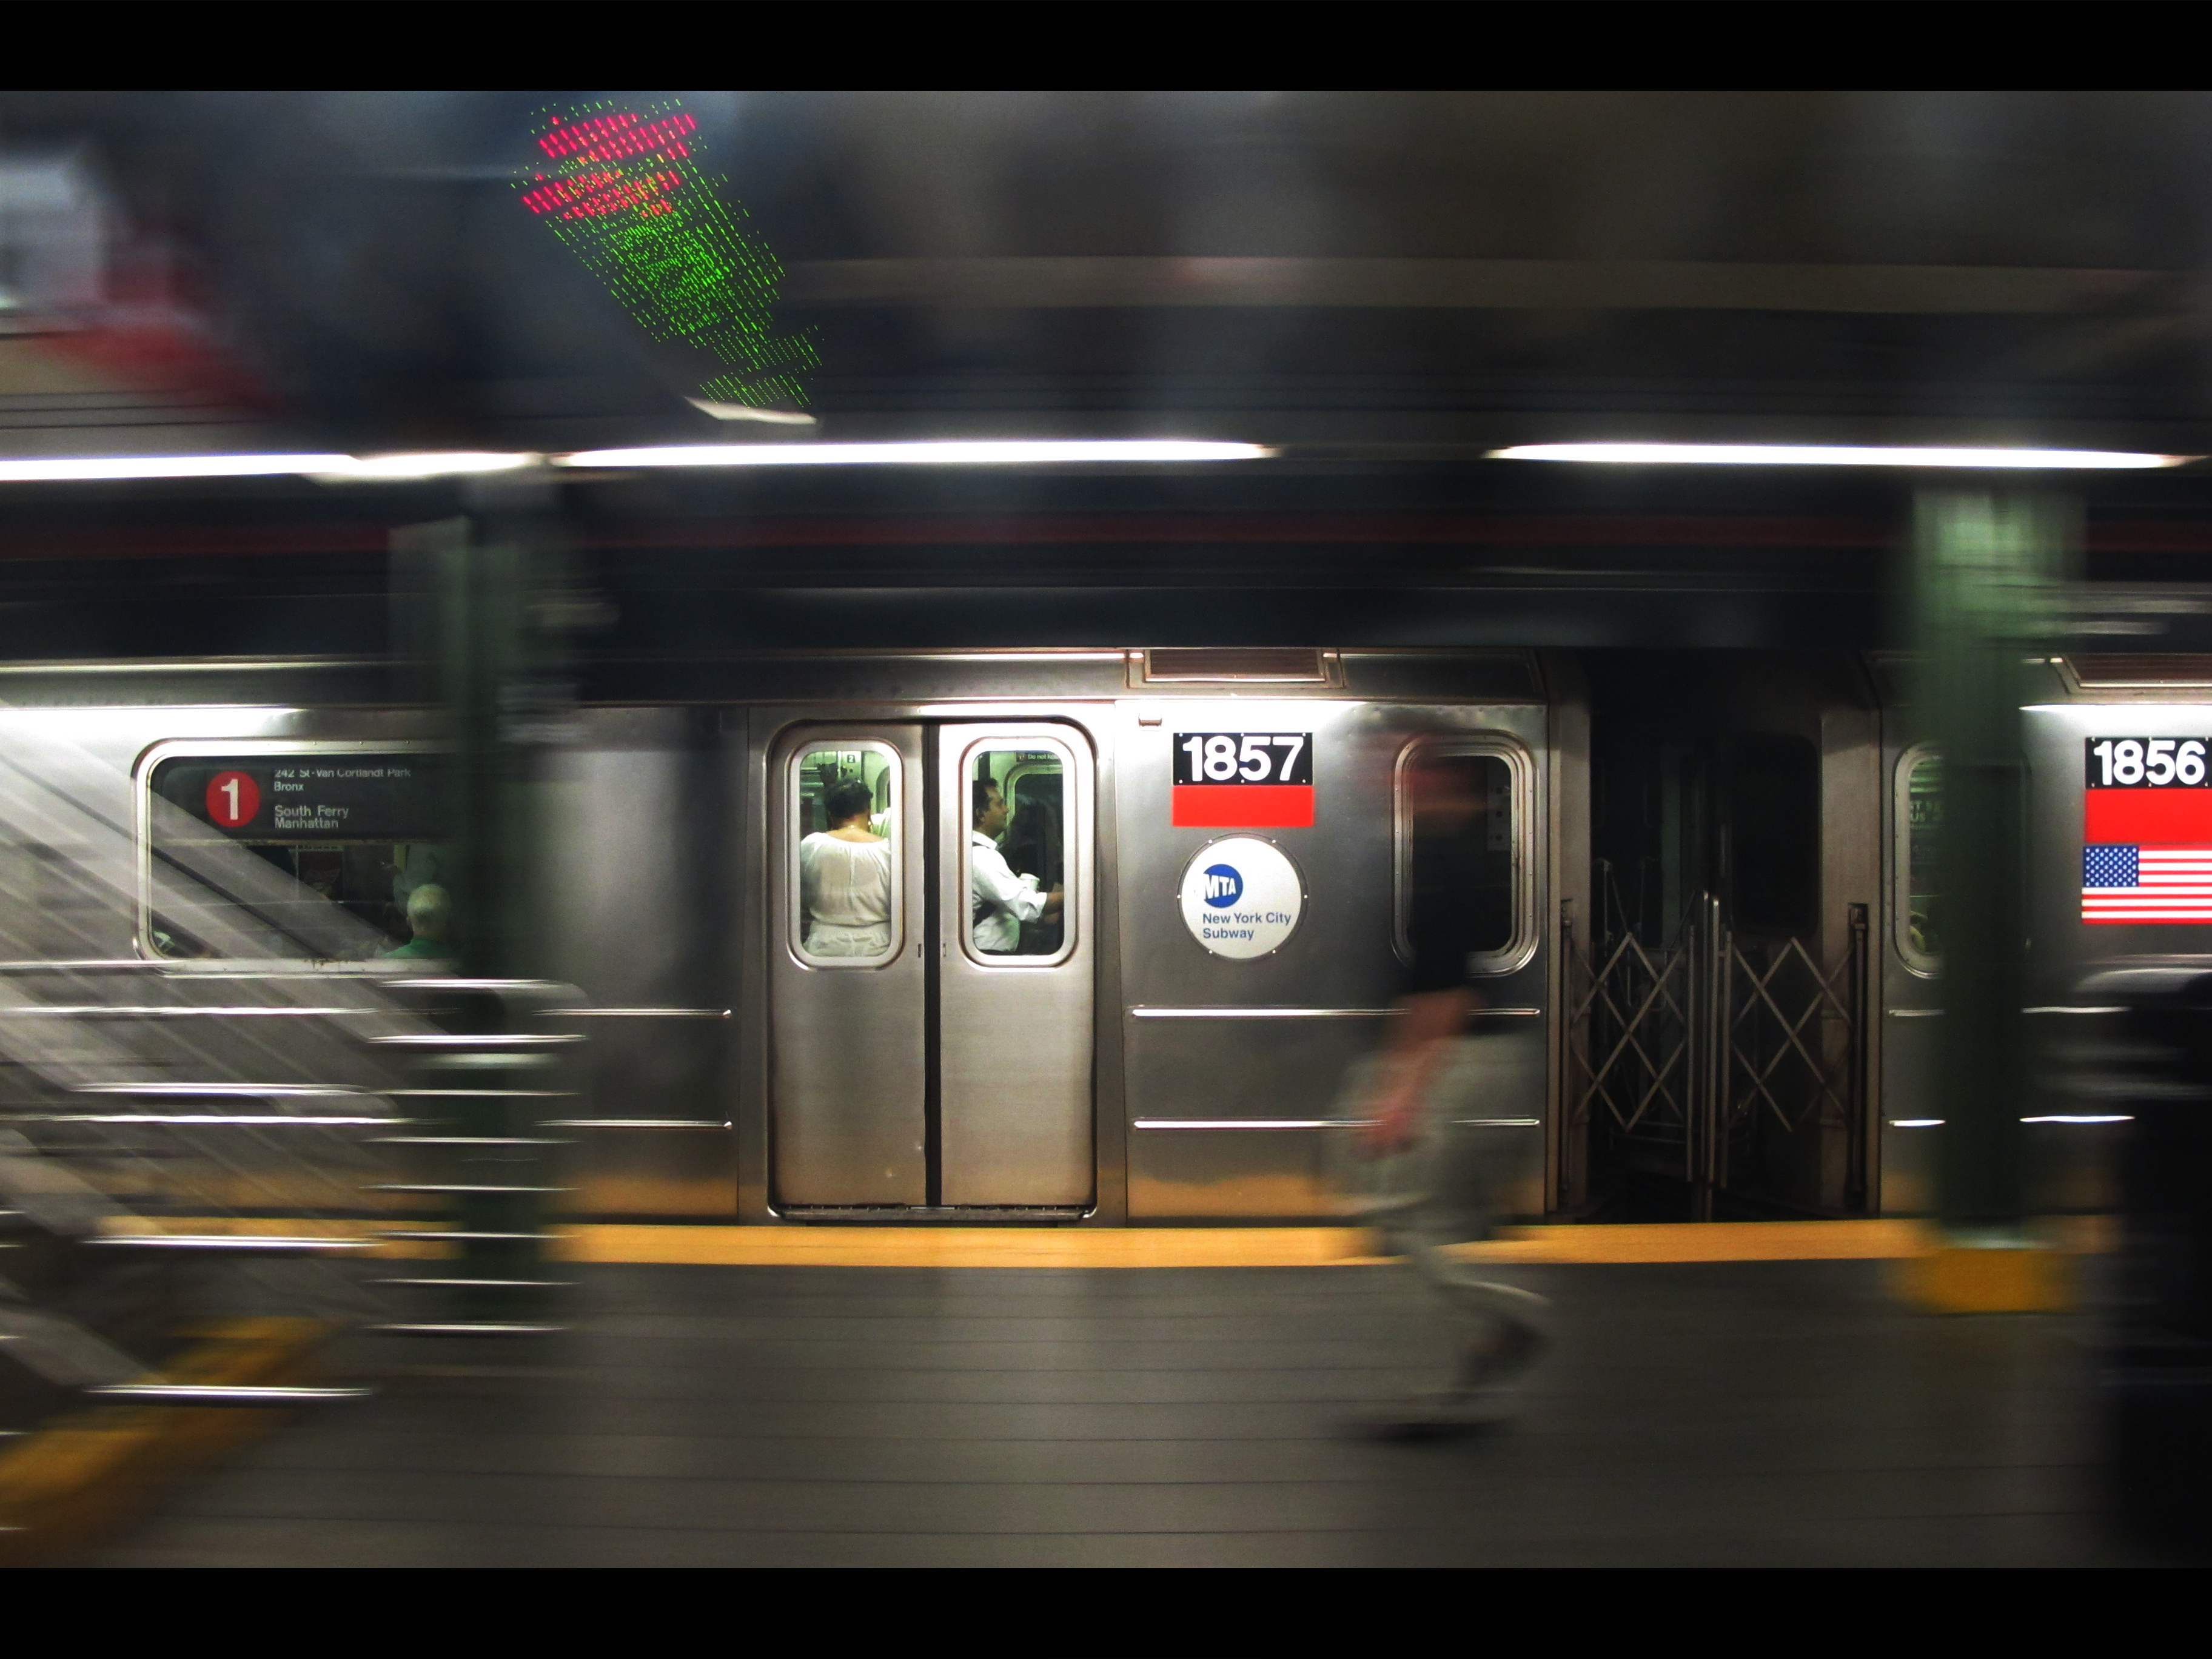 art in the new york city underground subway system The new york city subway system isn't known for being one of the world's most beautiful public transit systems, but believe it or not, it is home to some world-class art the mta has been .